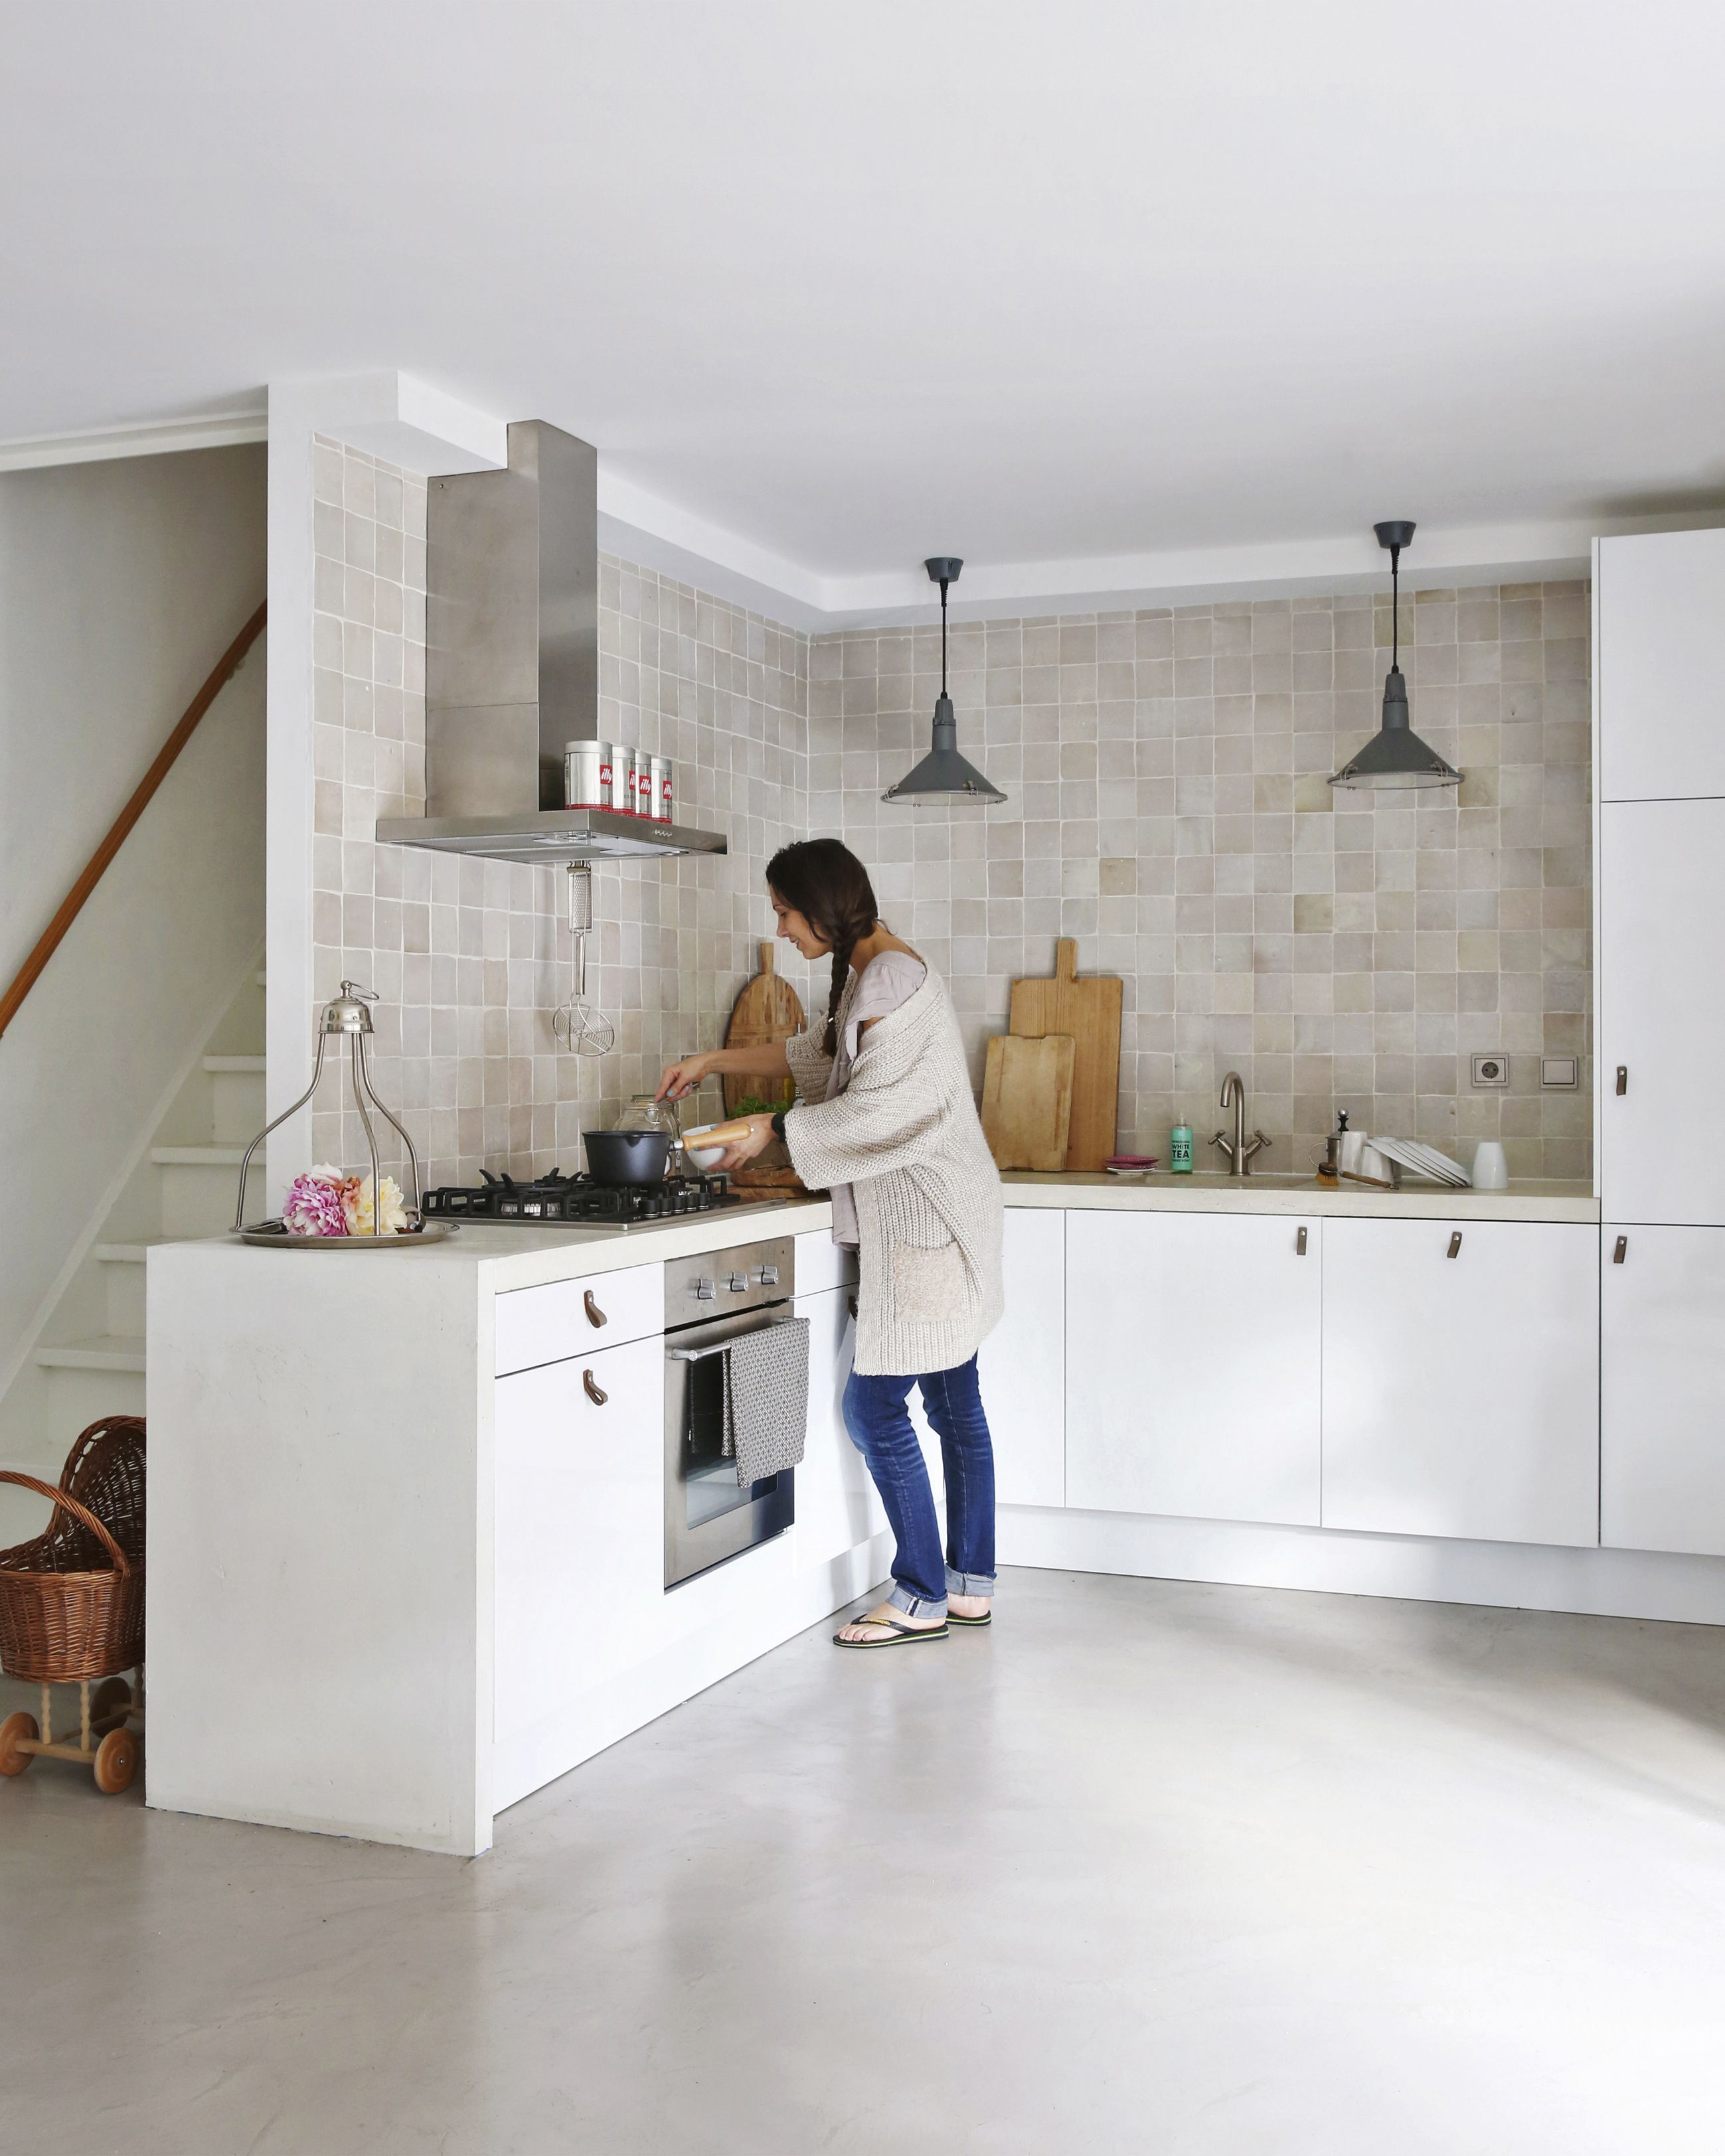 Ikea base | leather handles | customized concrete top | Zelliges ...